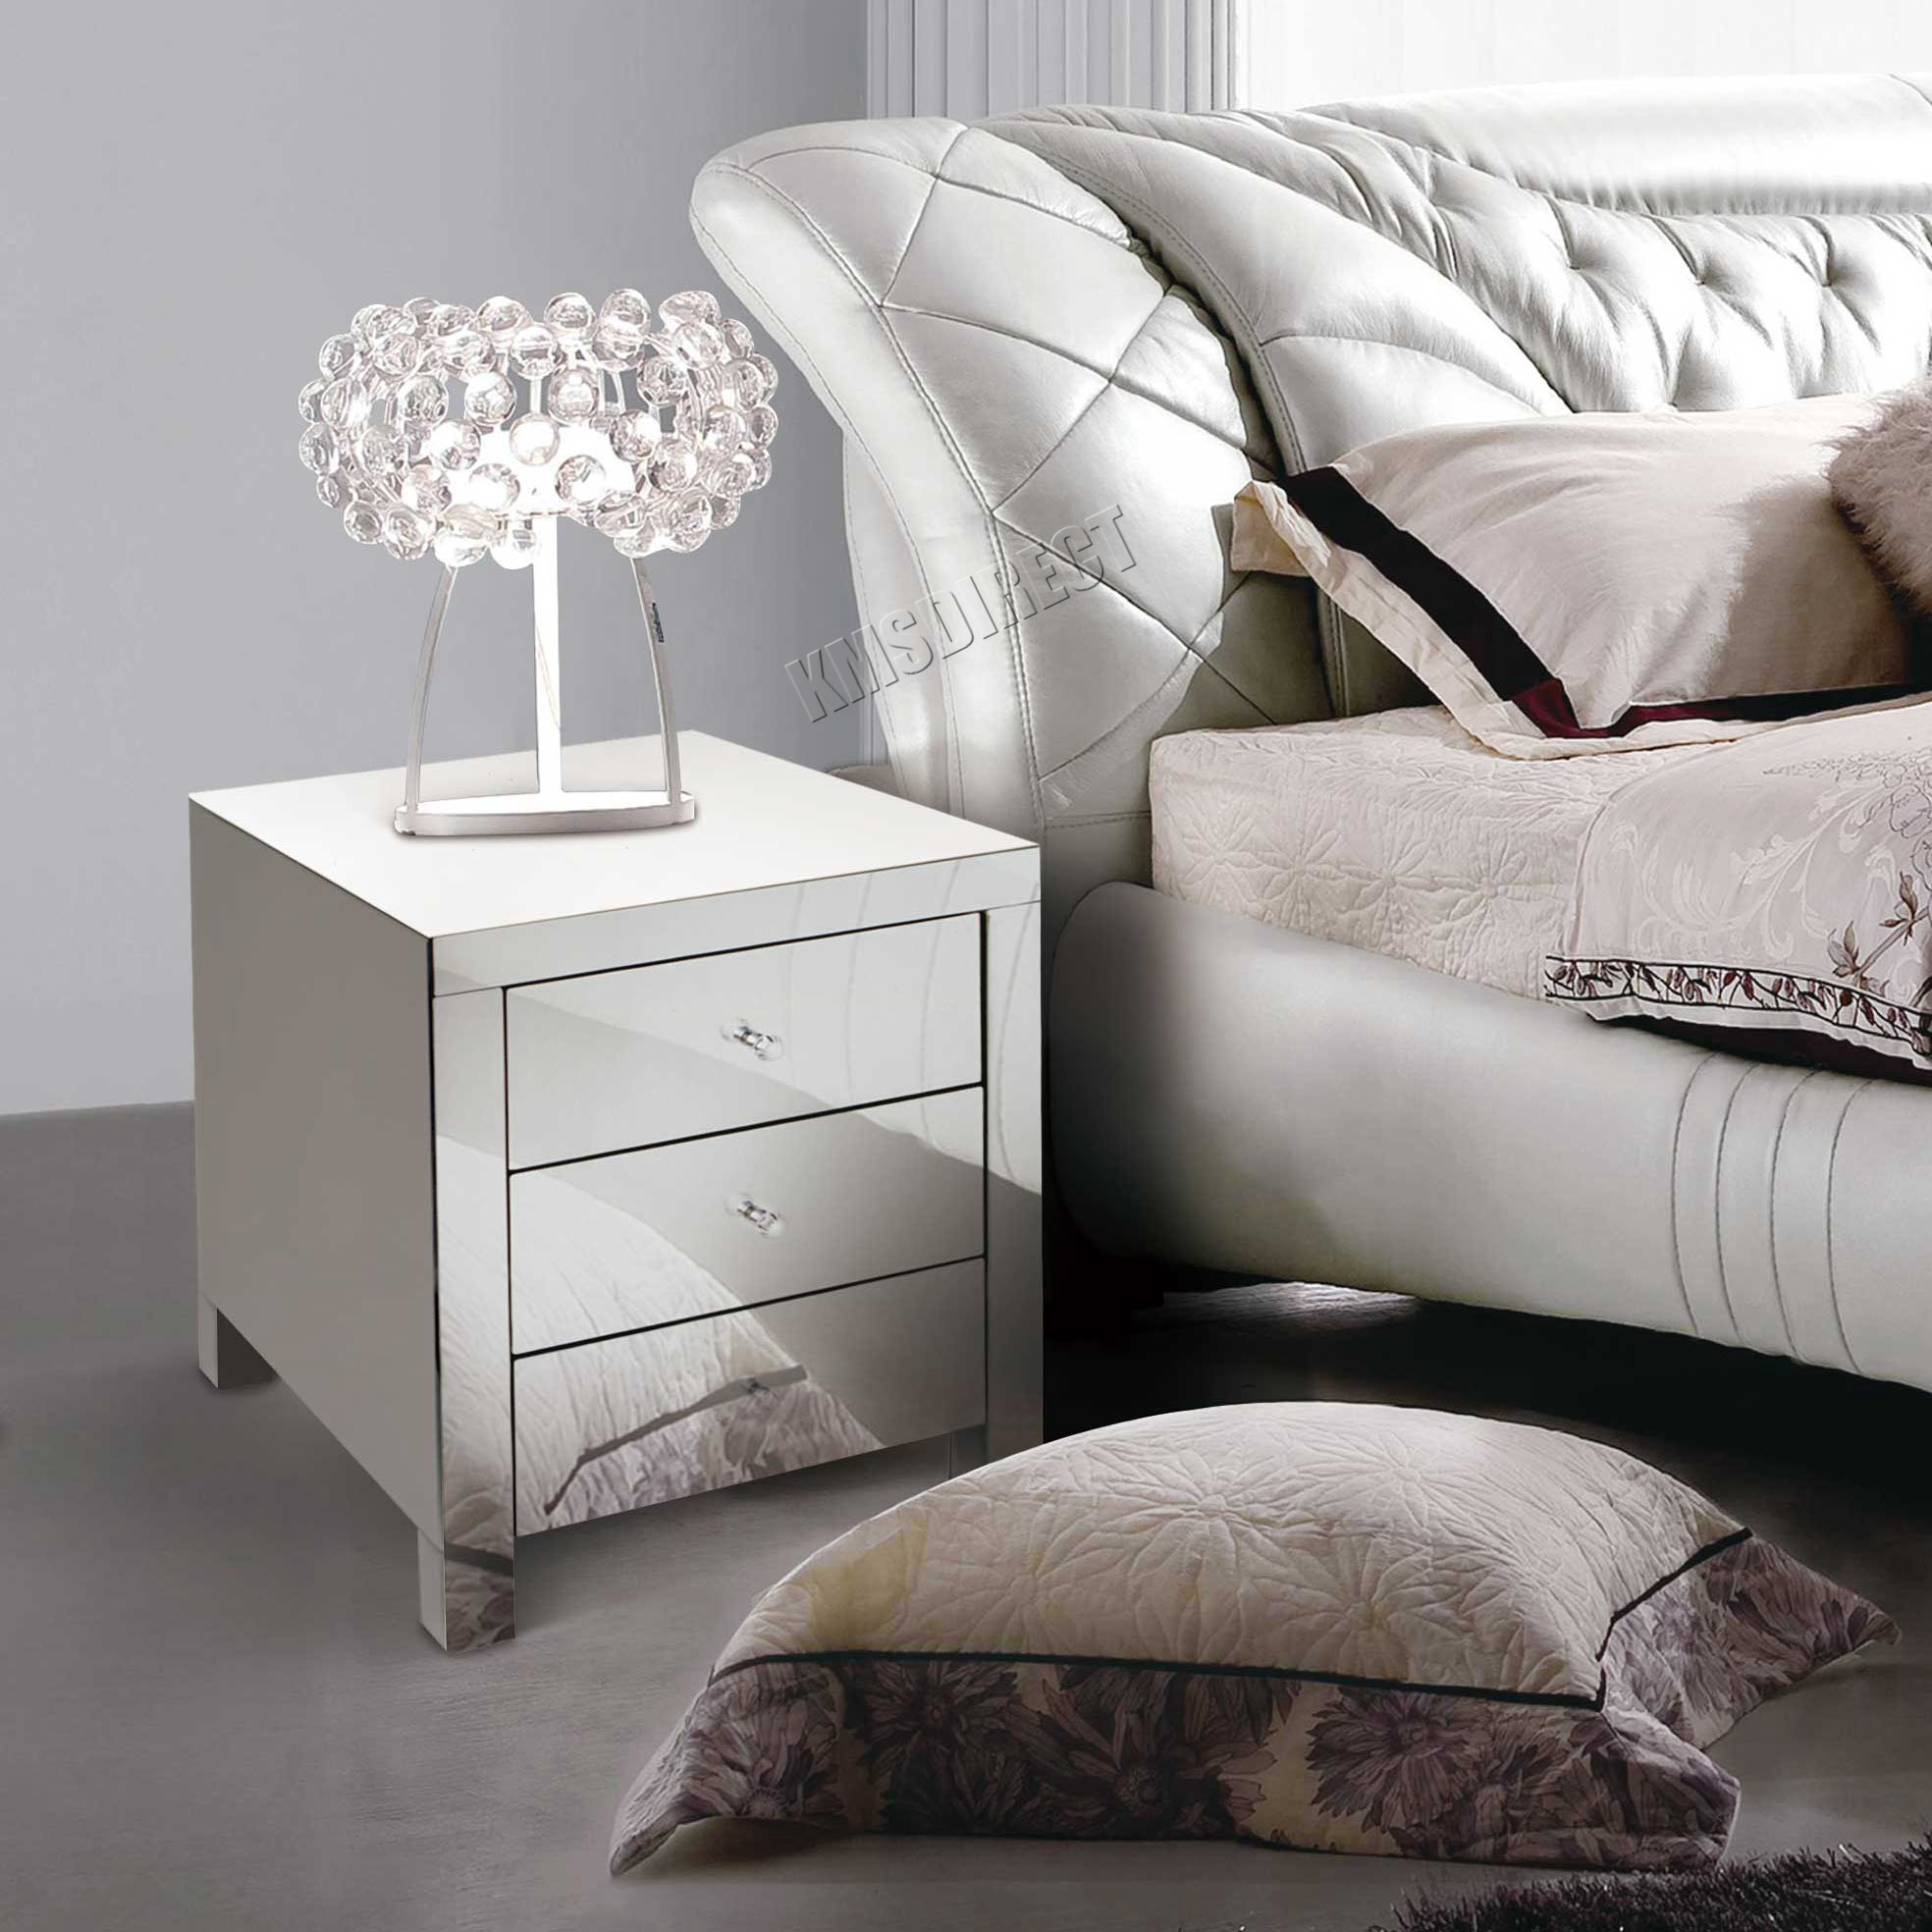 Mirrored Furniture Bedroom: FoxHunter Mirrored Furniture Glass Bedside Cabinet Table